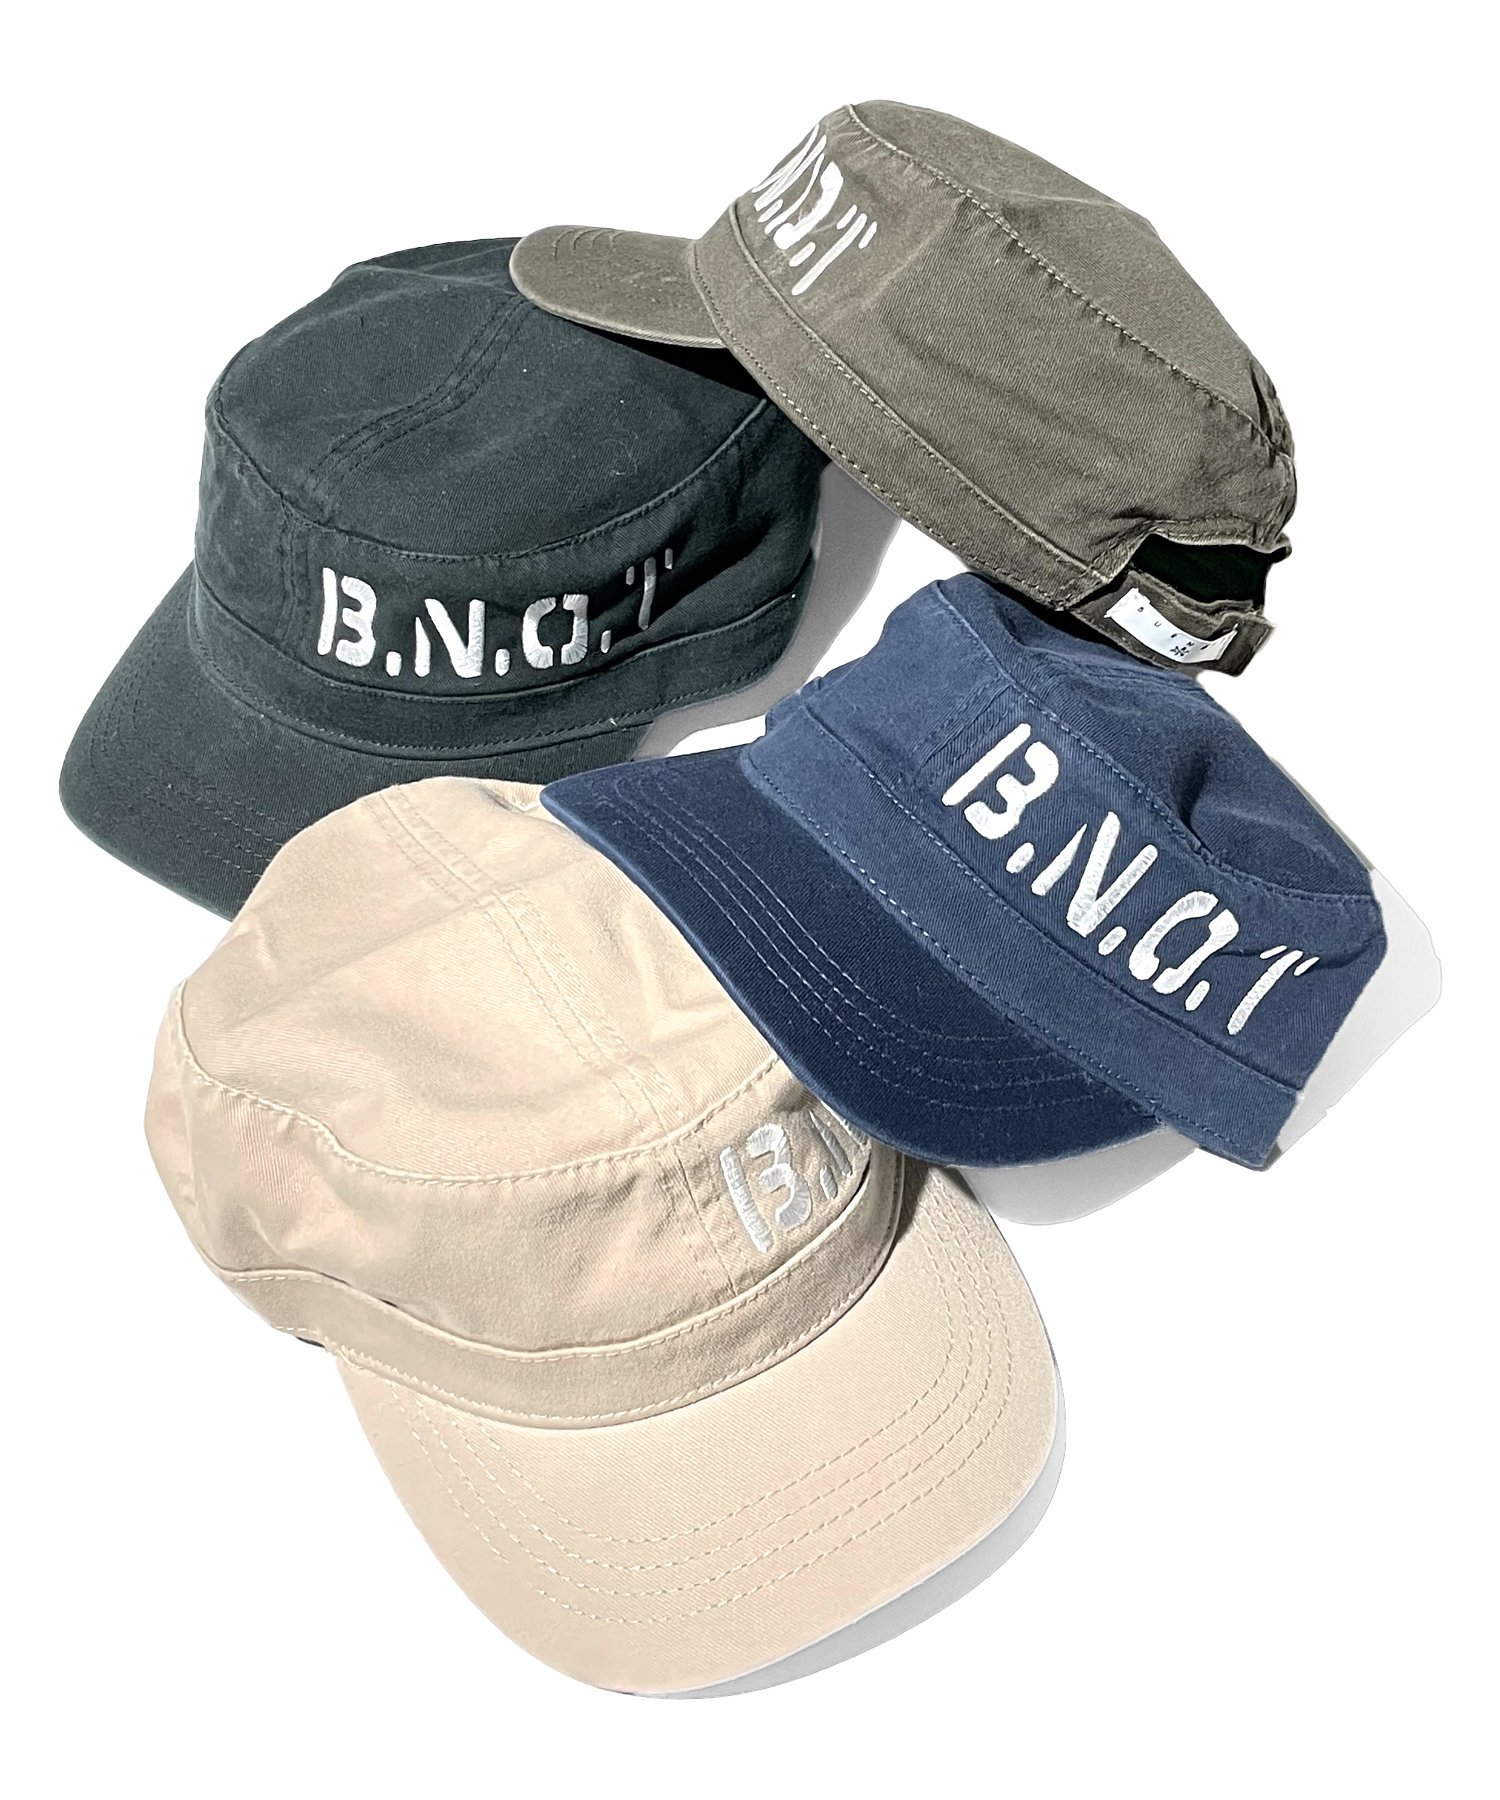 Burnout〔バーンアウト〕 『21' early summer collection』 ワーク CAP(4 colors)